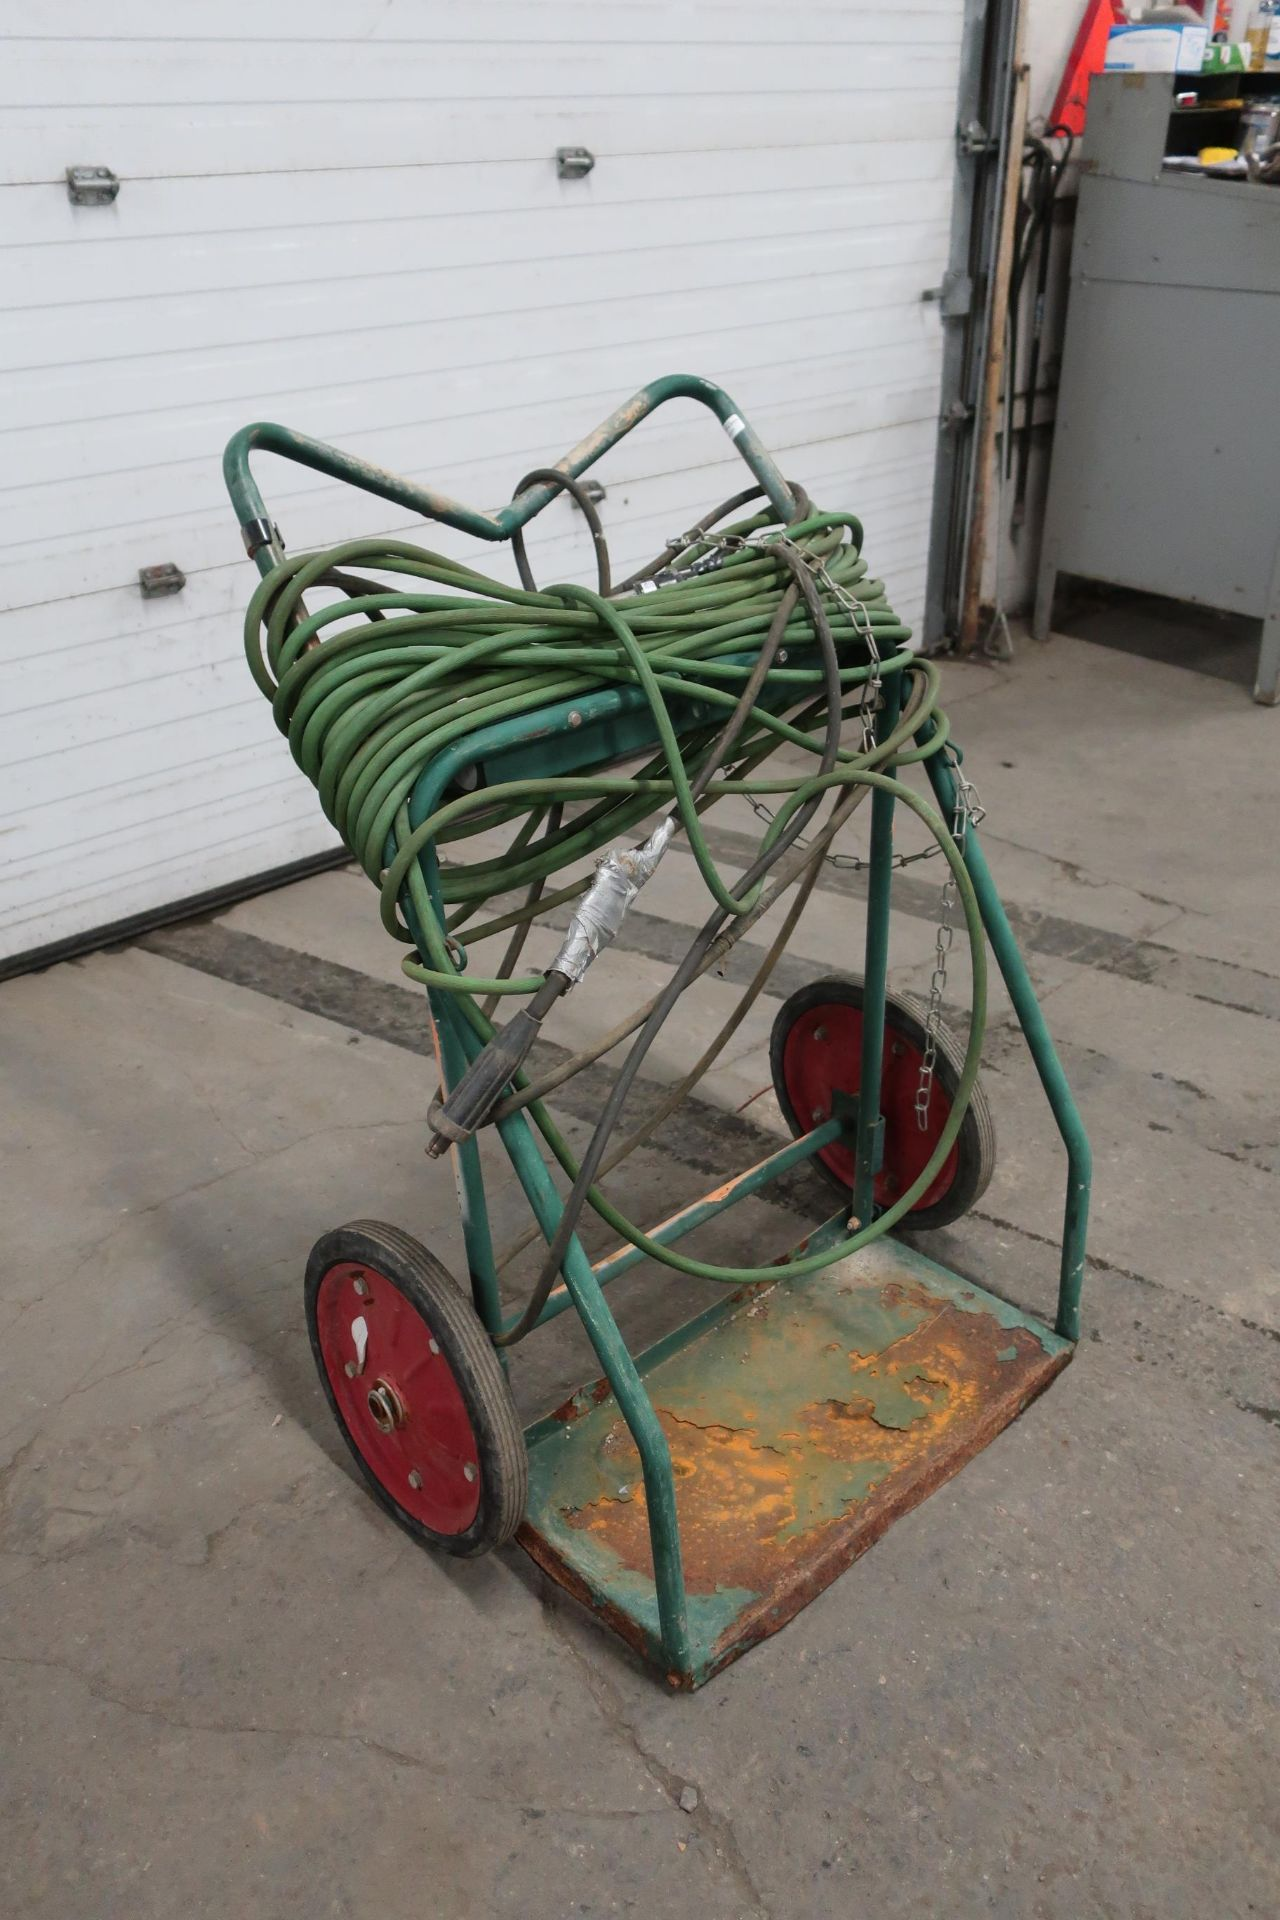 Torching Dolley Cart with Regulalor and Hose